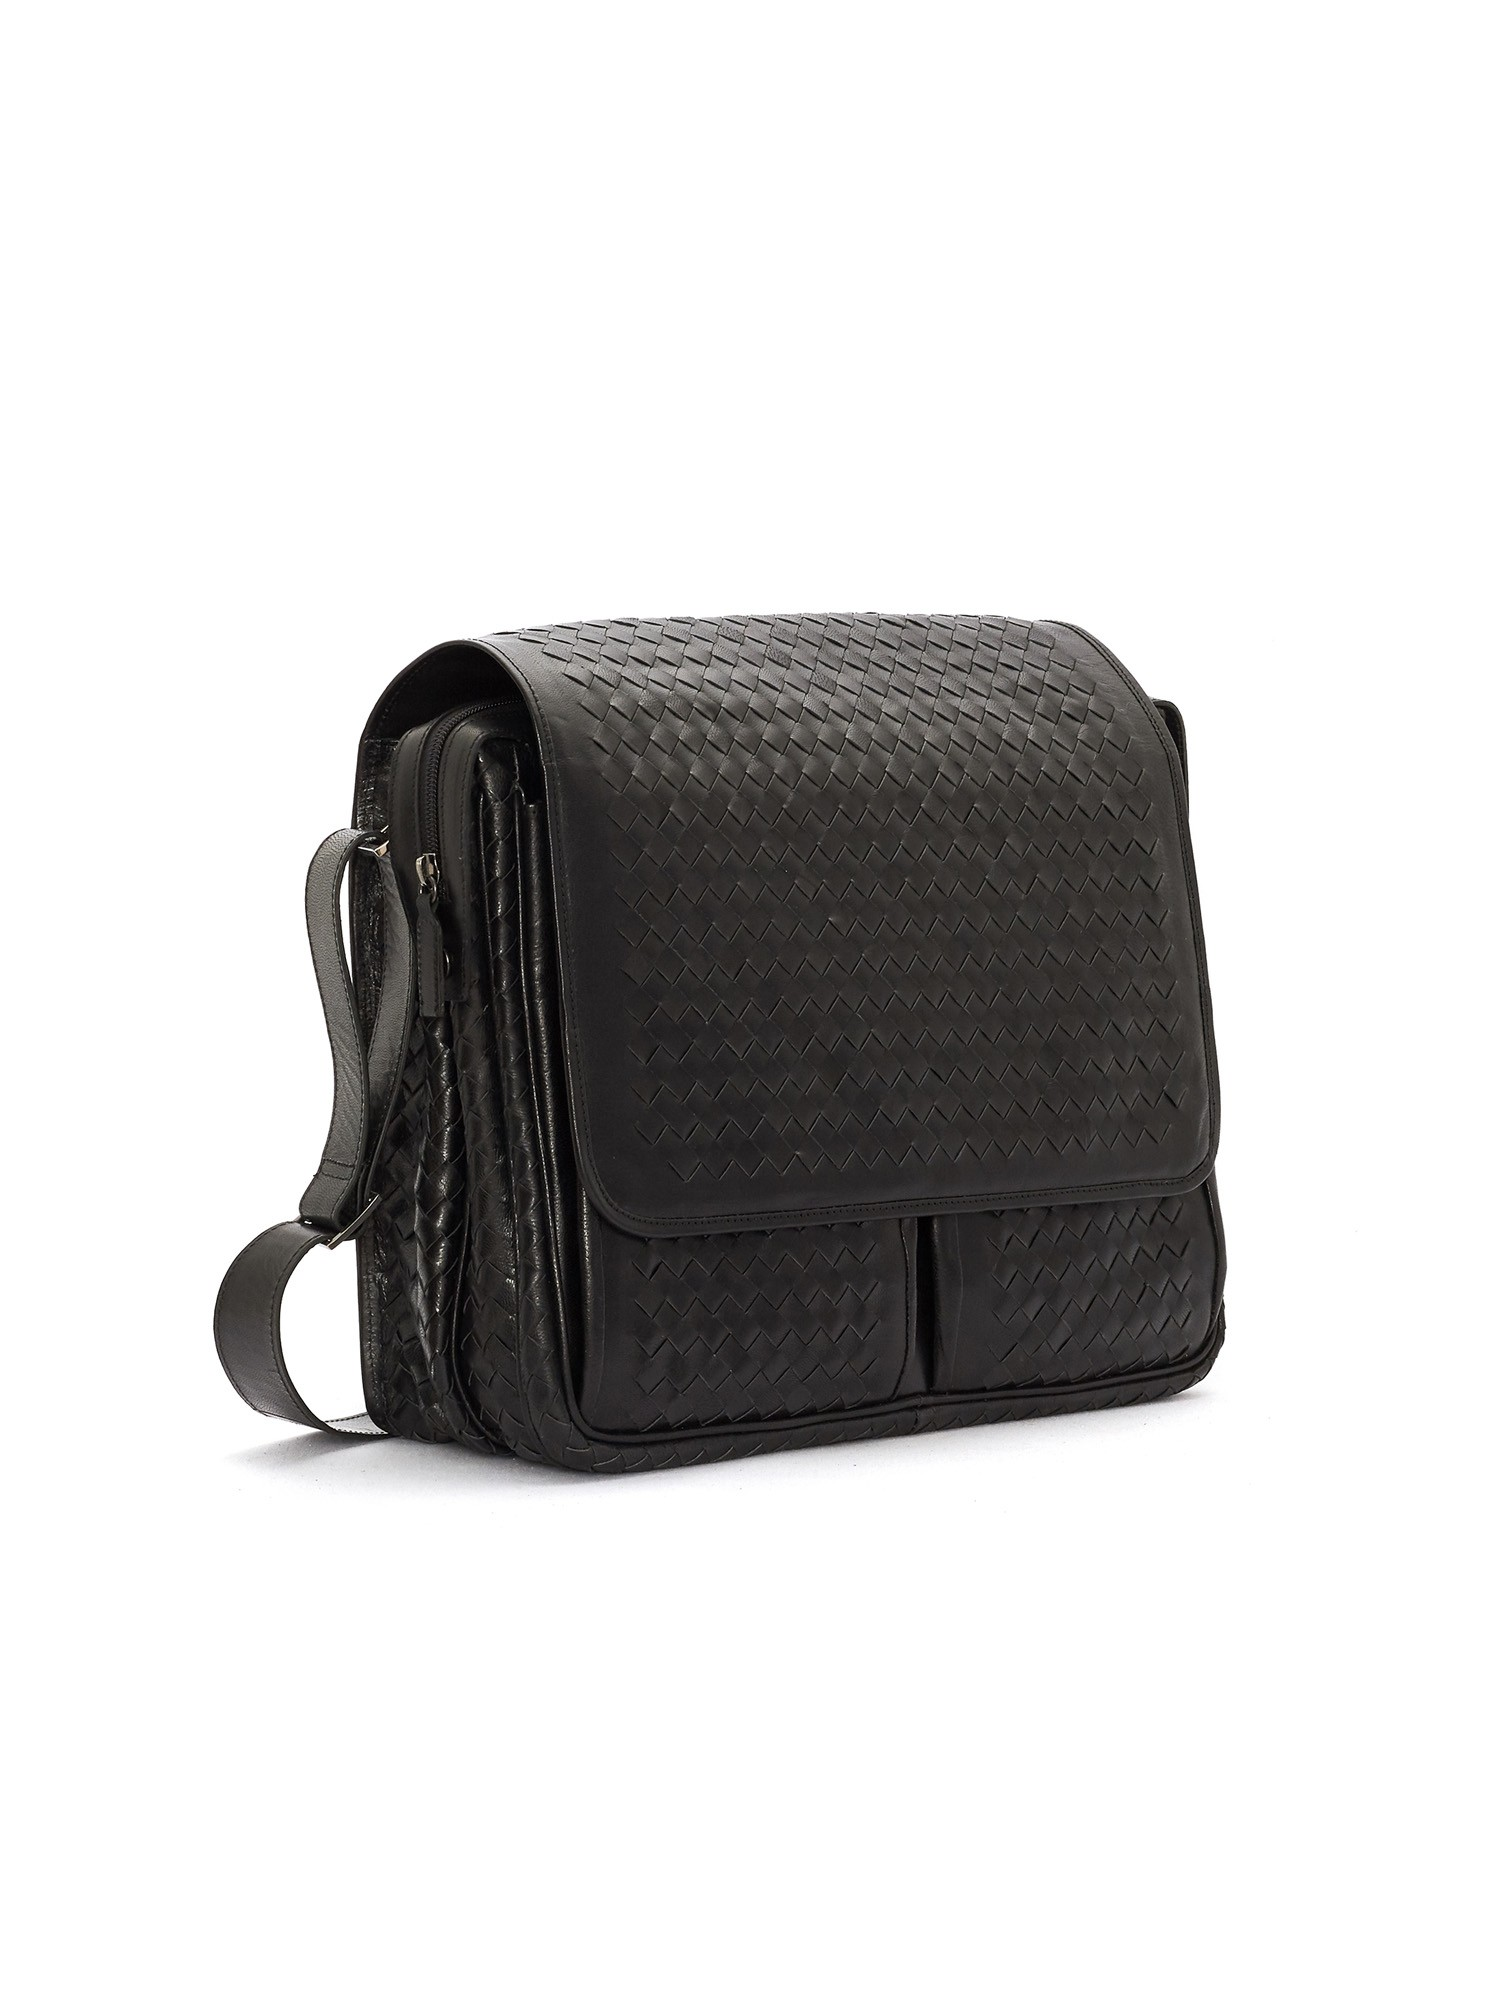 BLACK BRAIDED NAPPA LEATHER PORTA PC